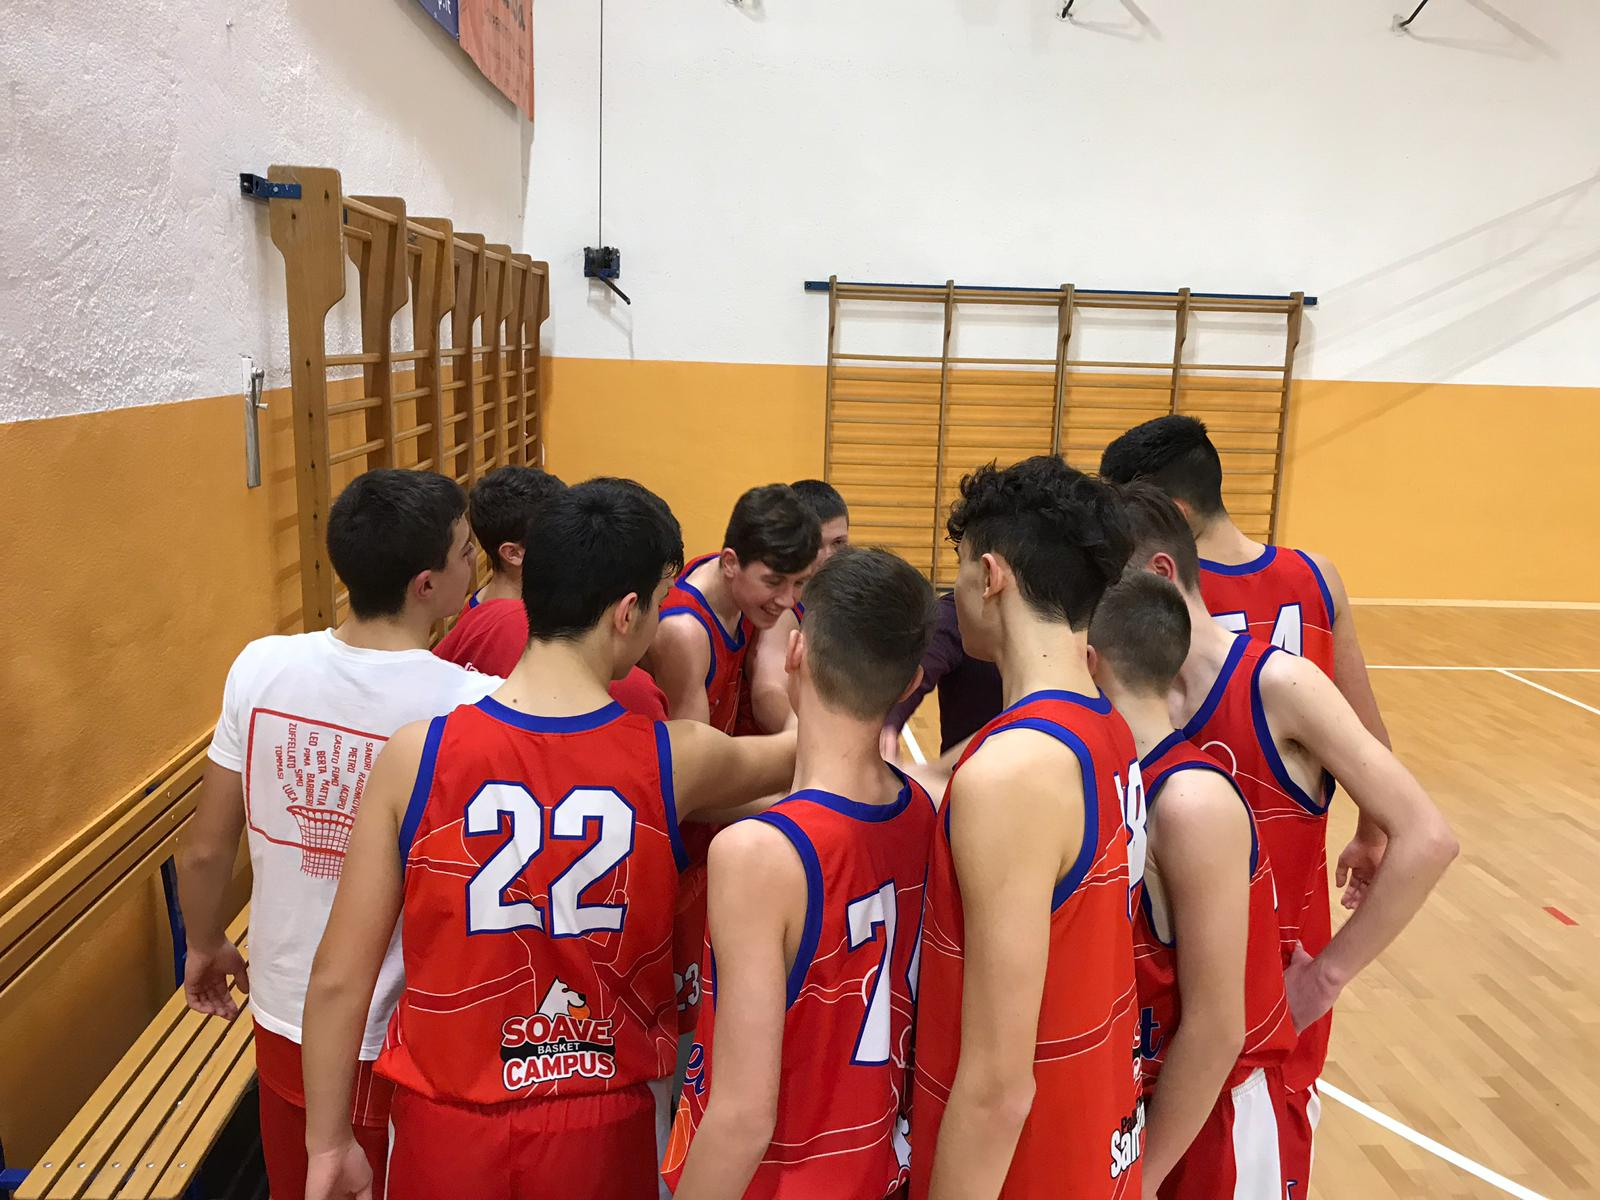 U16 vs Playbasket